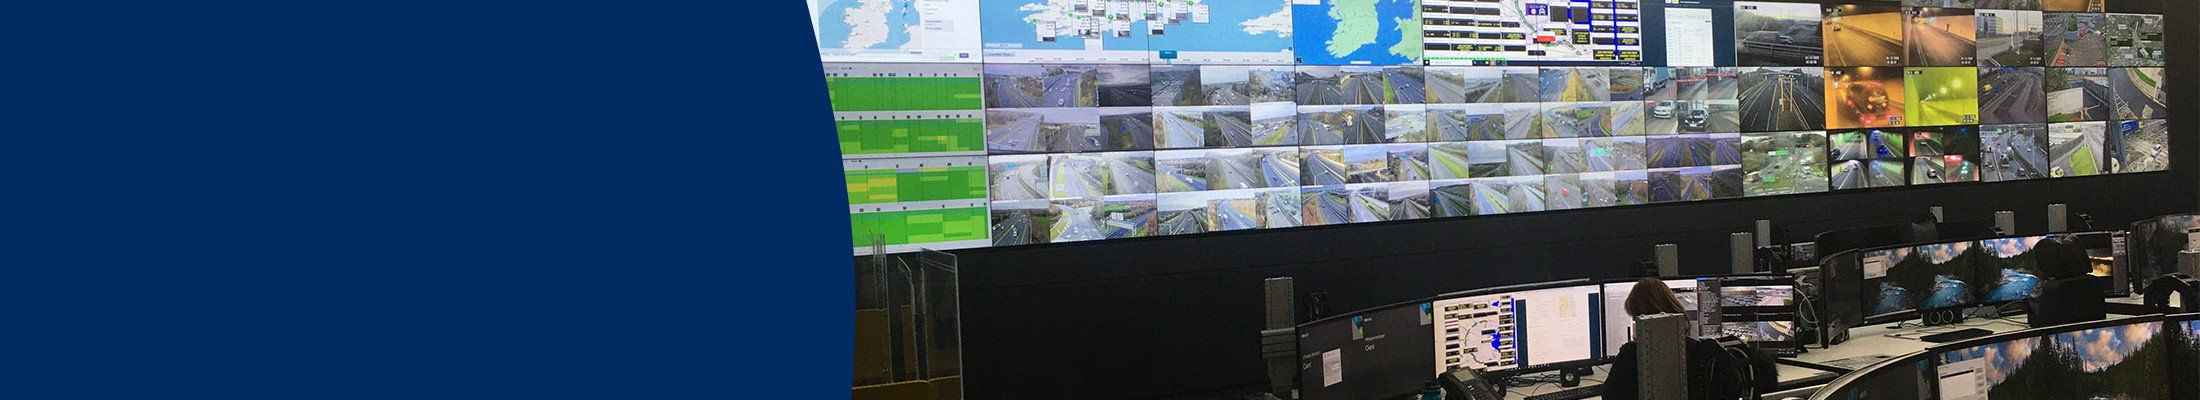 MotorwayTrafficControlCentre_heroImage_large